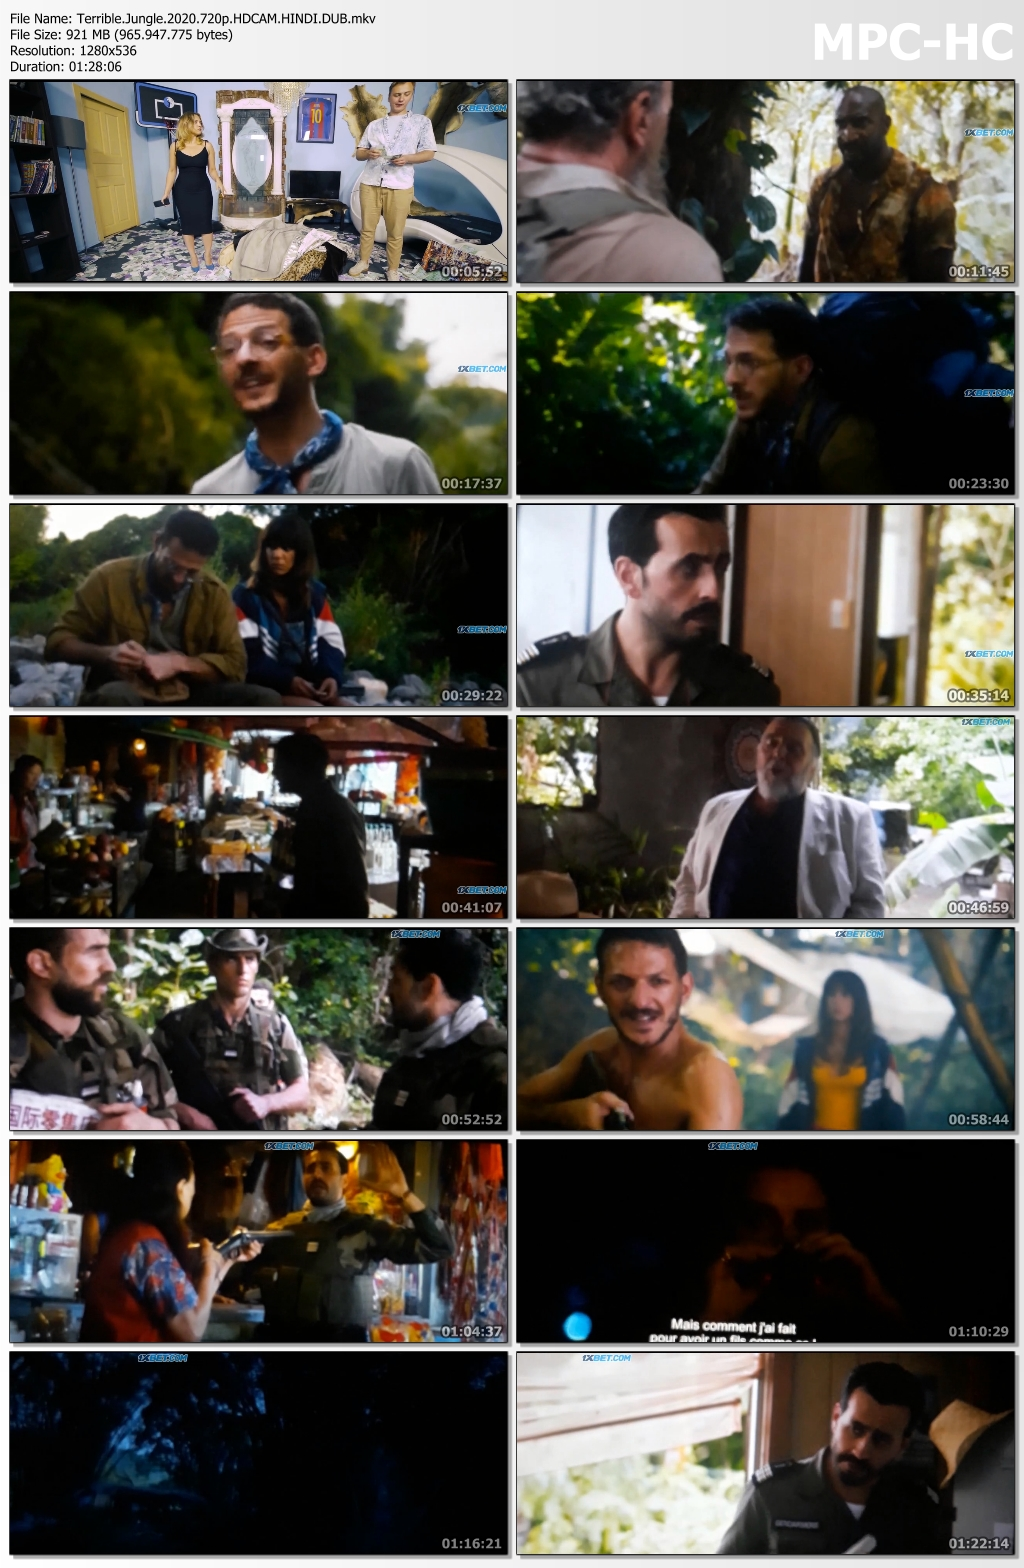 Terrible-Jungle-2020-720p-HDCAM-HINDI-DUB-mkv-thumbs